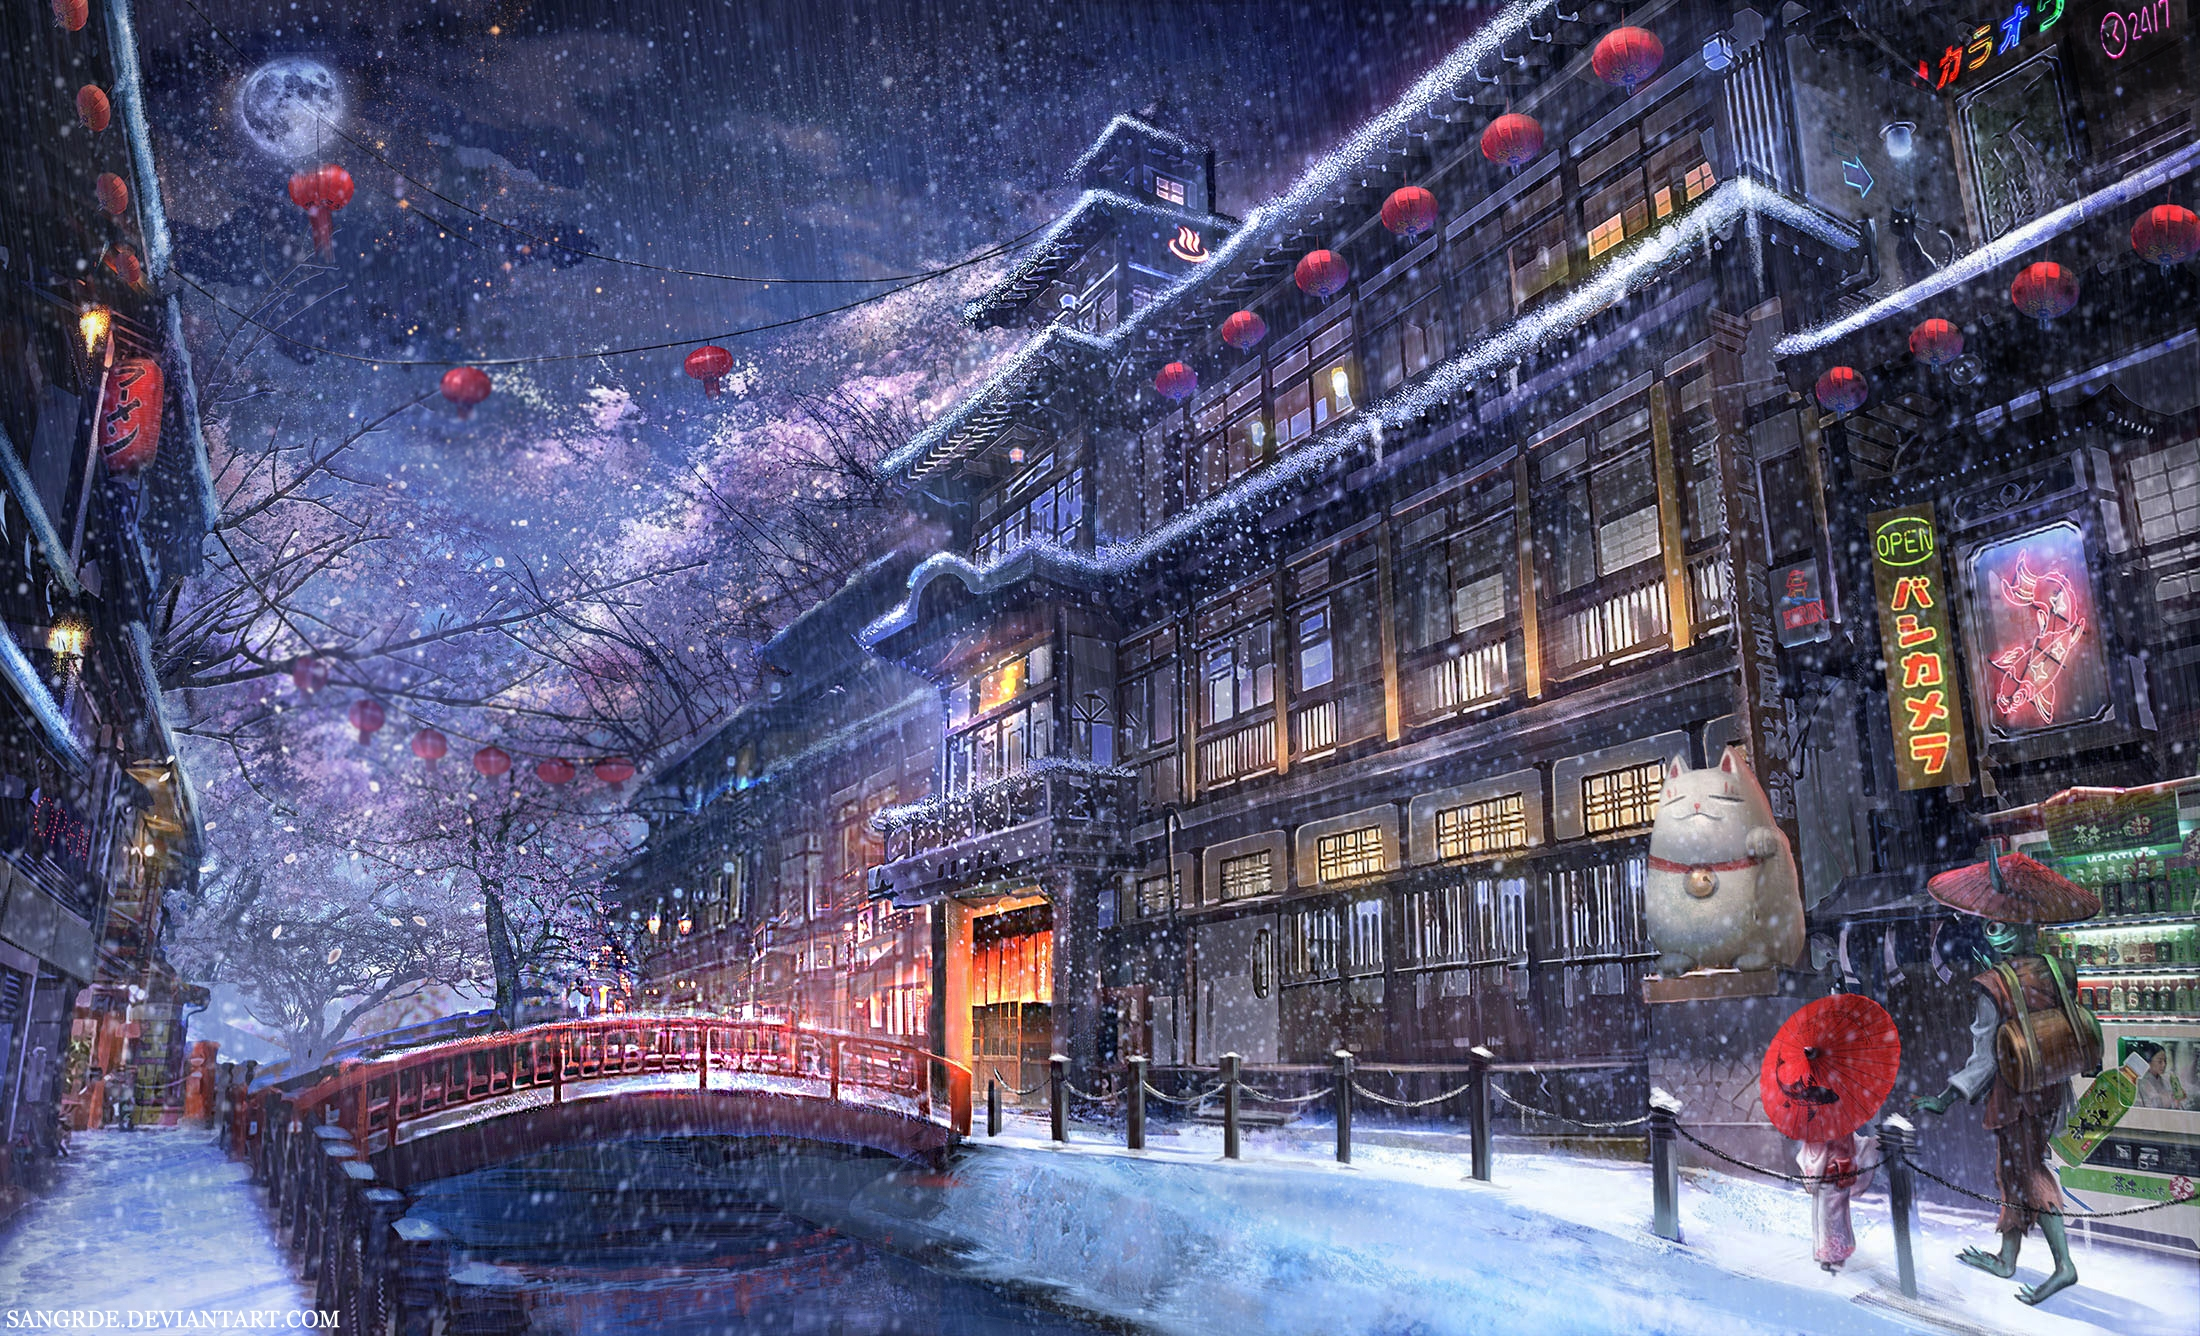 Wallpapers 1600x900 Cars Download 1920x1080 Anime Traditional City Raining Snow